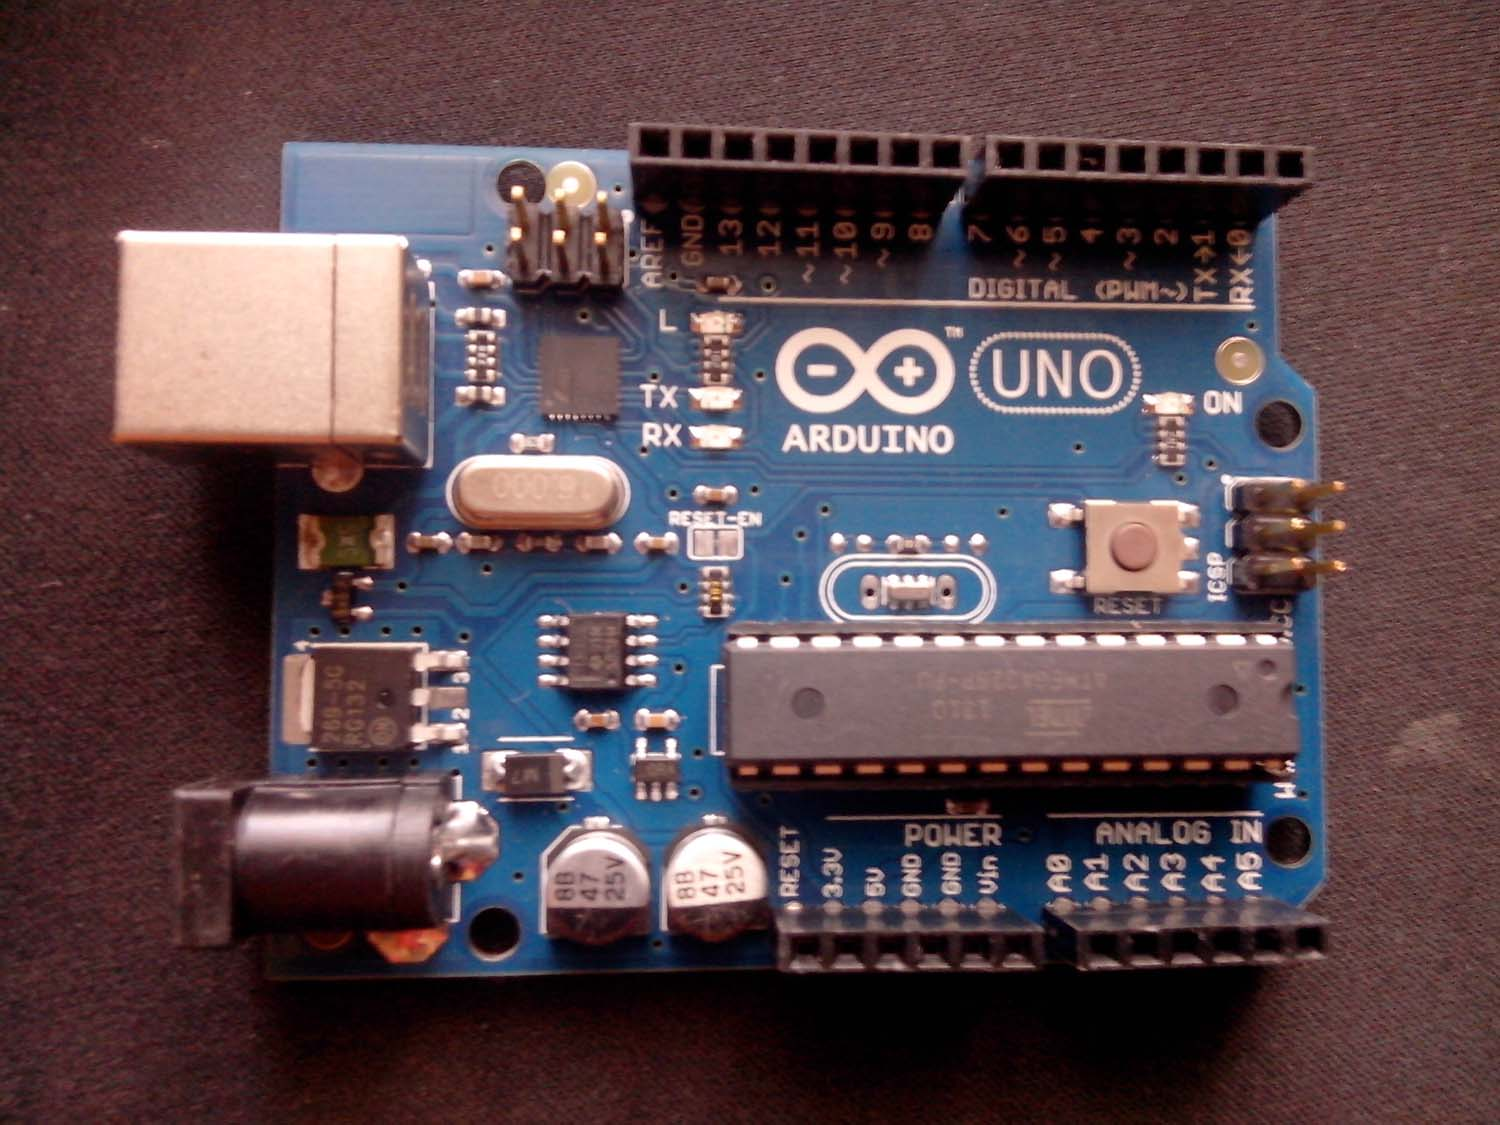 Download RemoteXY: Arduino control PRO for Android